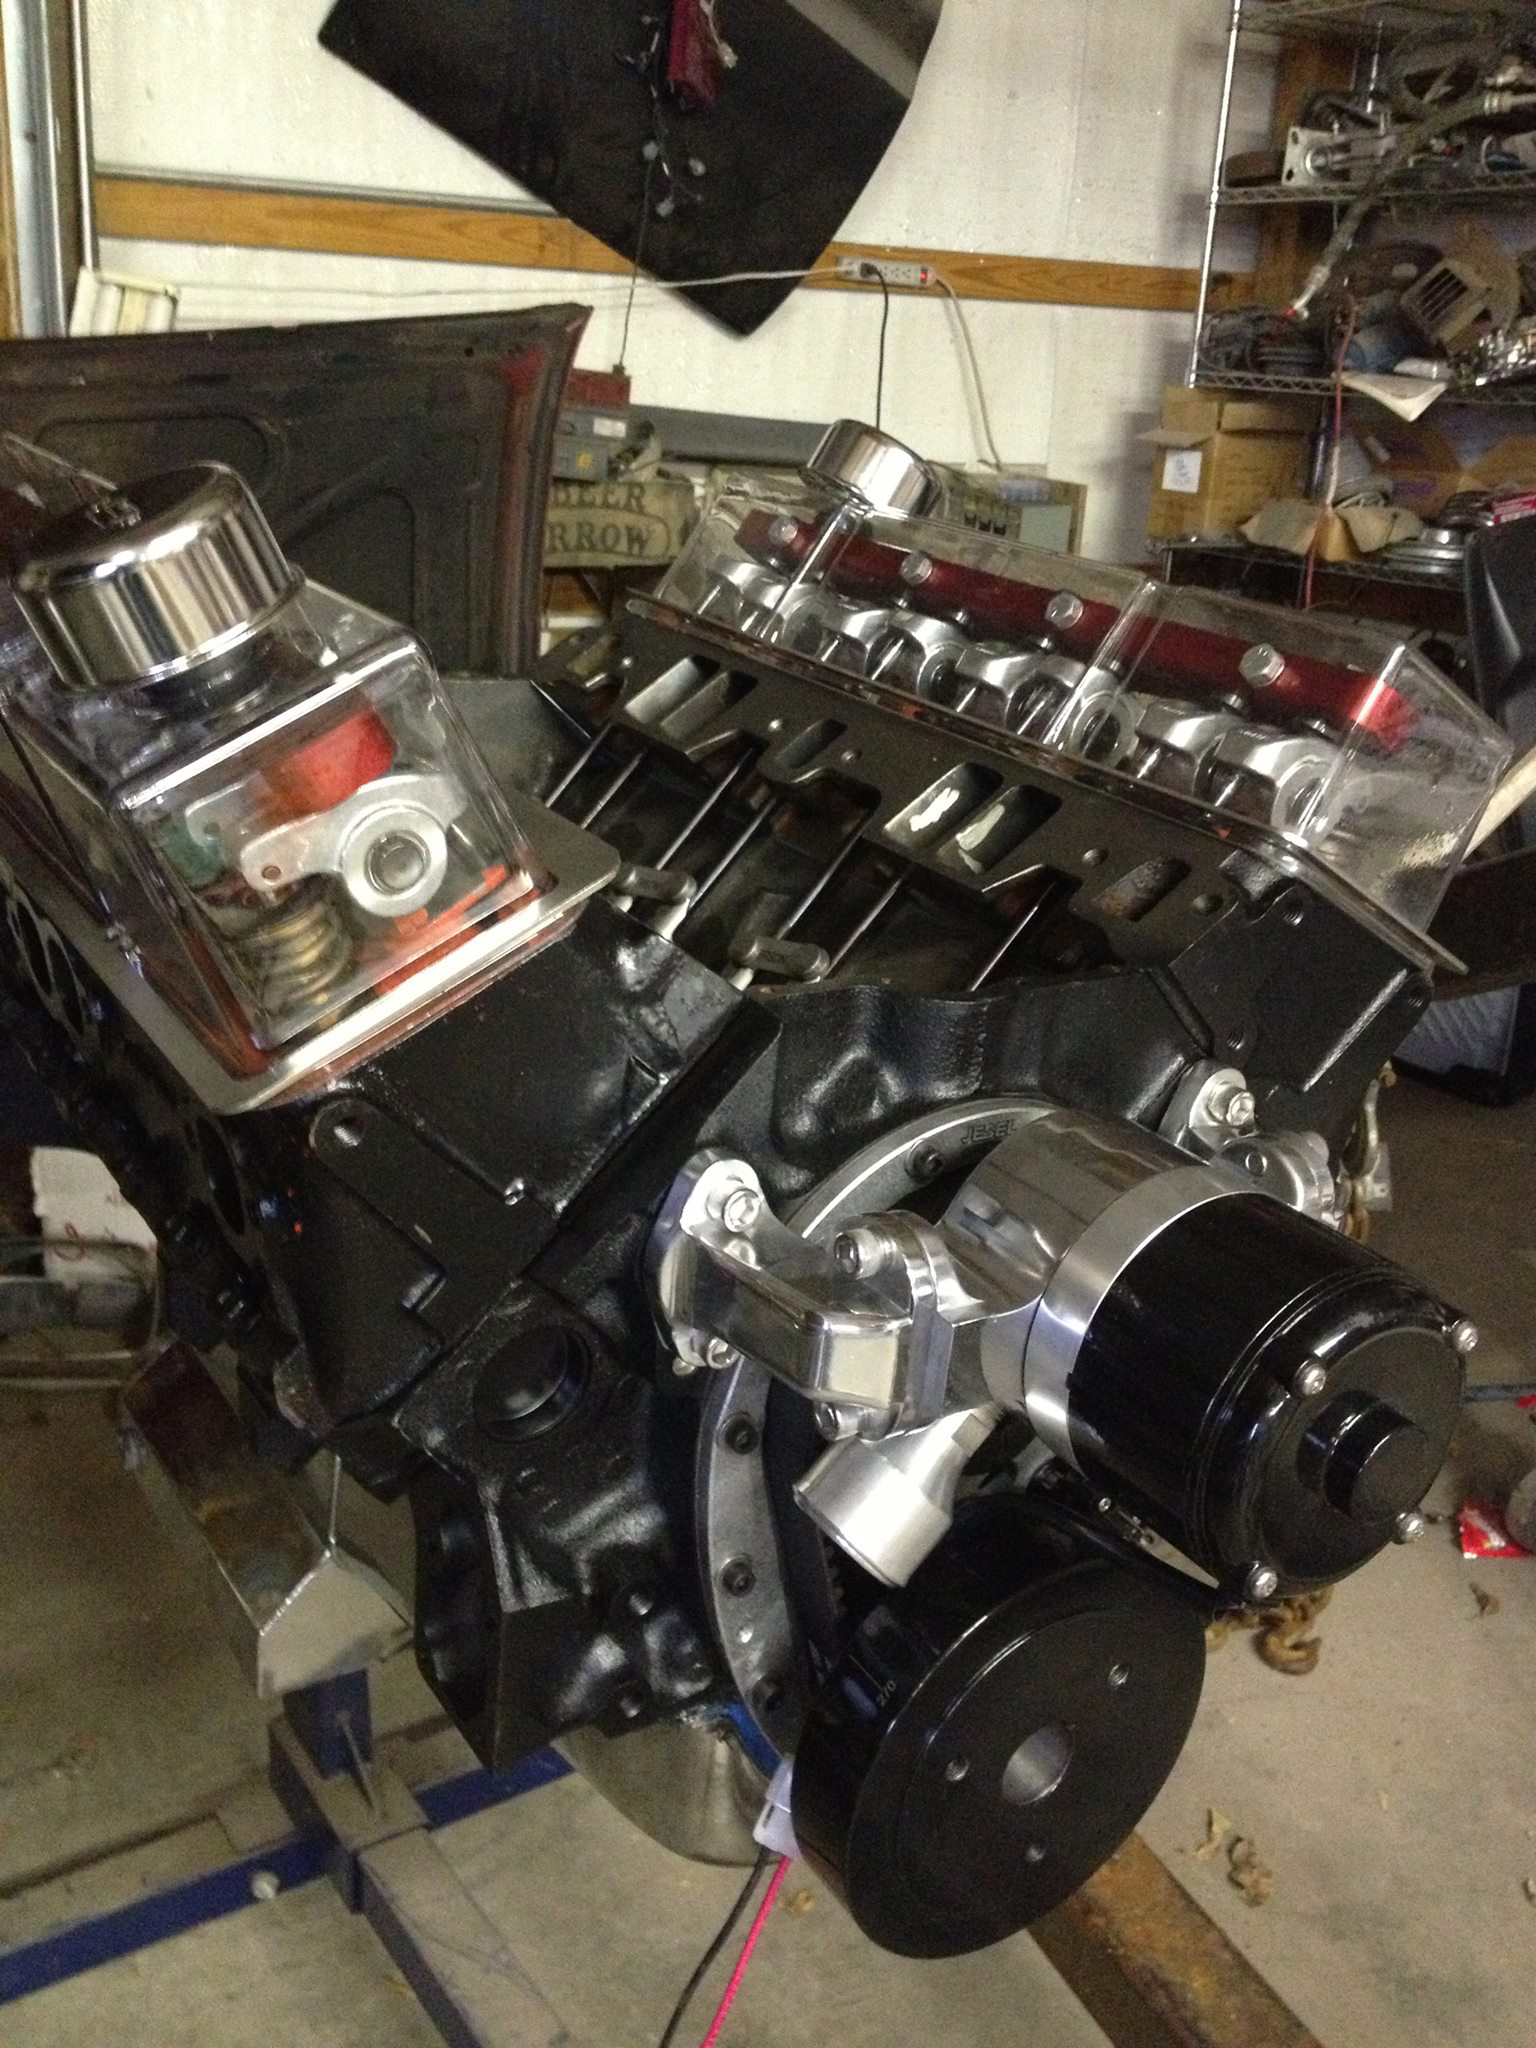 clear valve covers for small block chevy engines sbc ebay. Black Bedroom Furniture Sets. Home Design Ideas